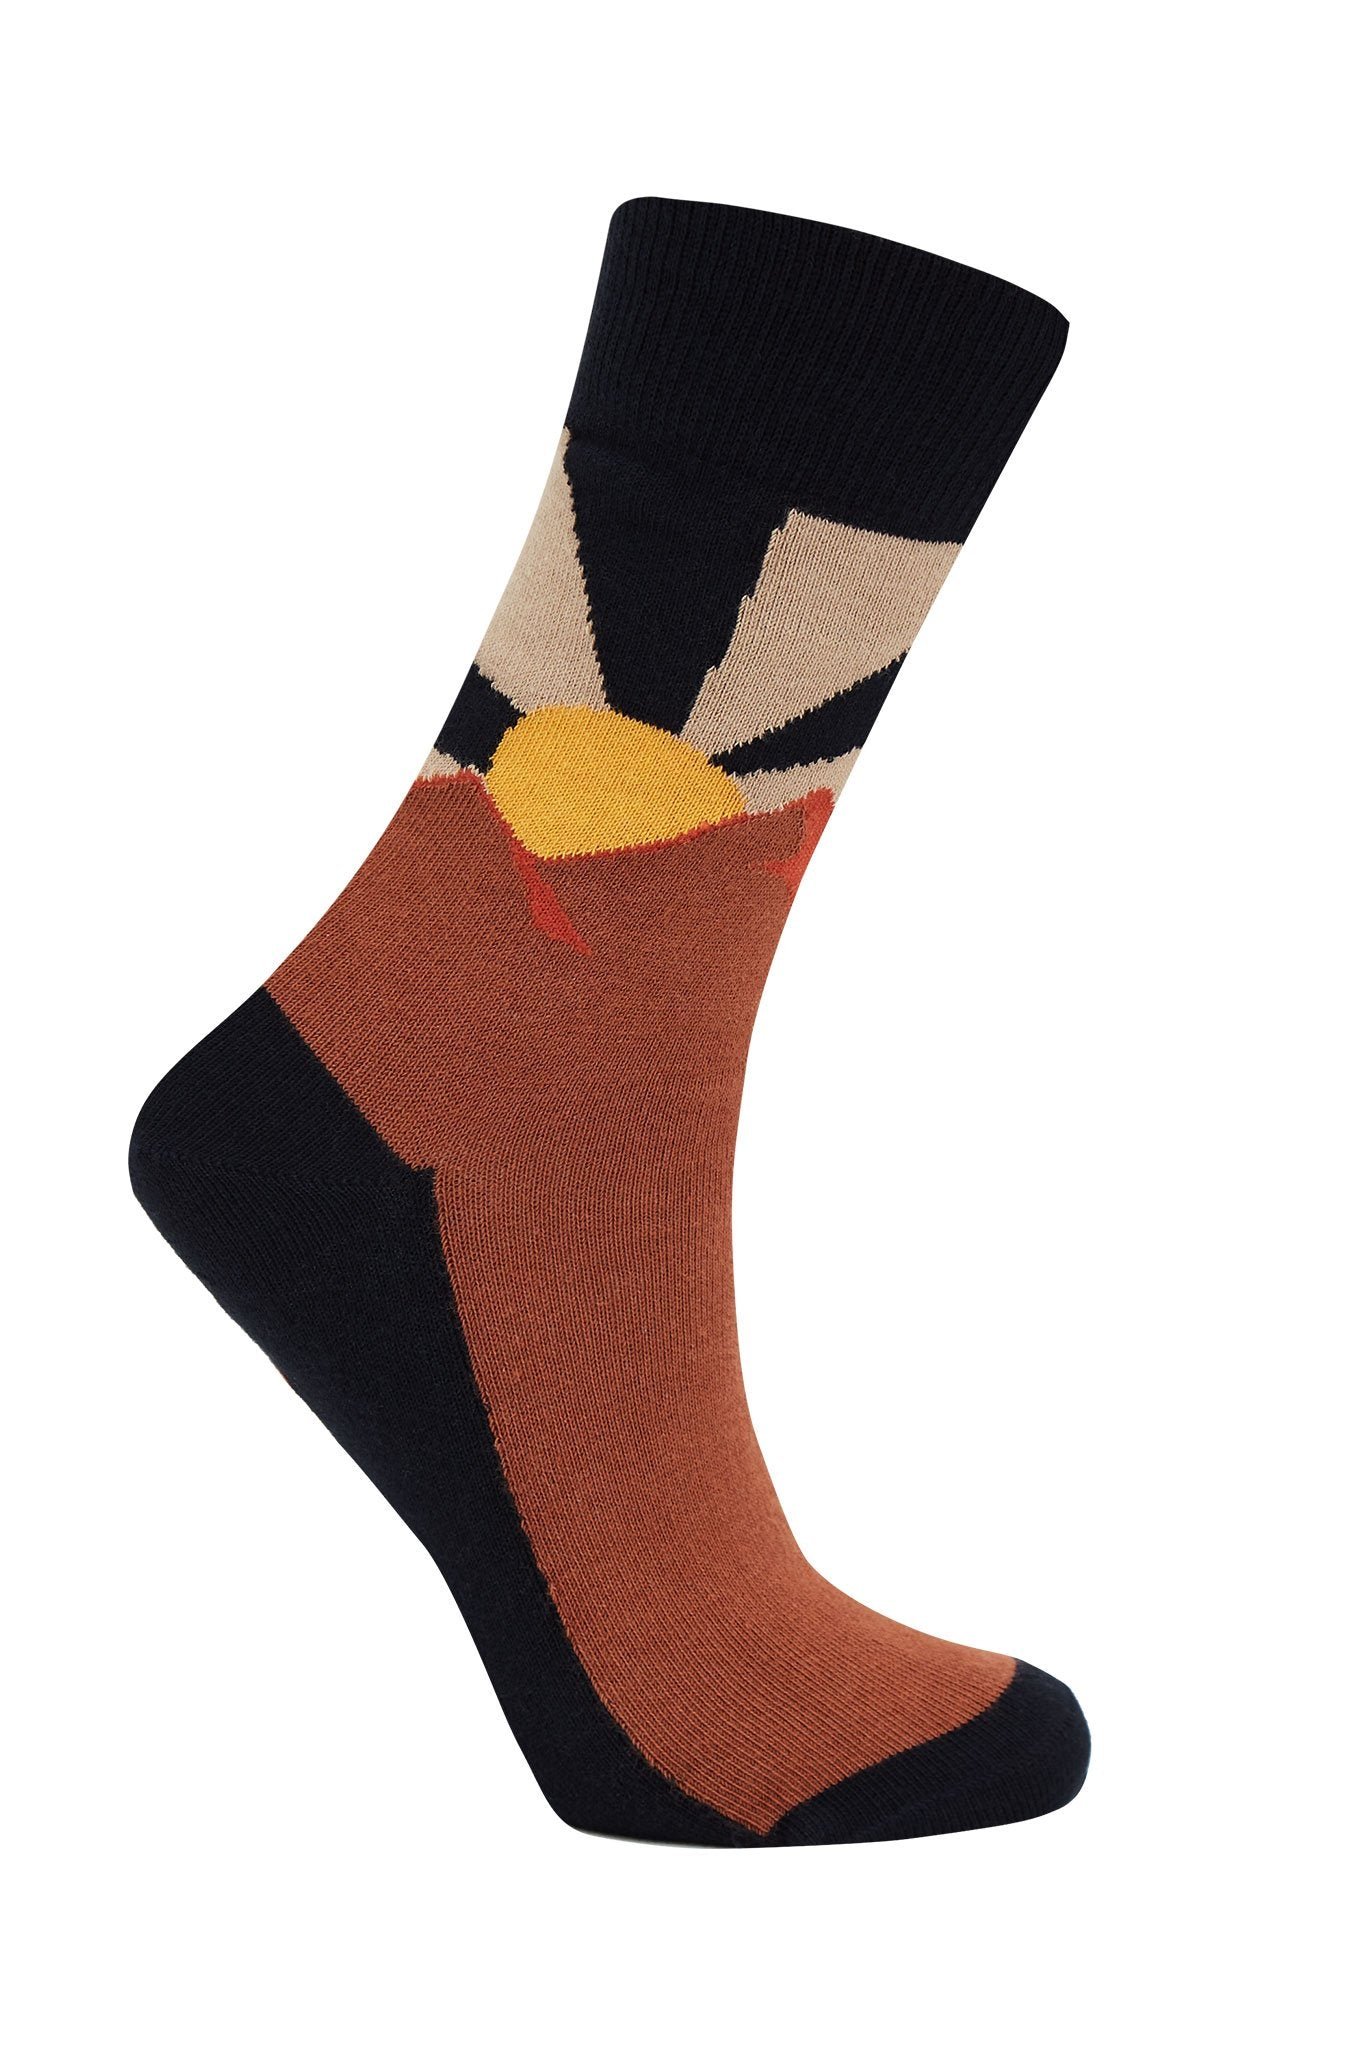 TIBET Warm Sand - GOTS Organic Cotton Socks